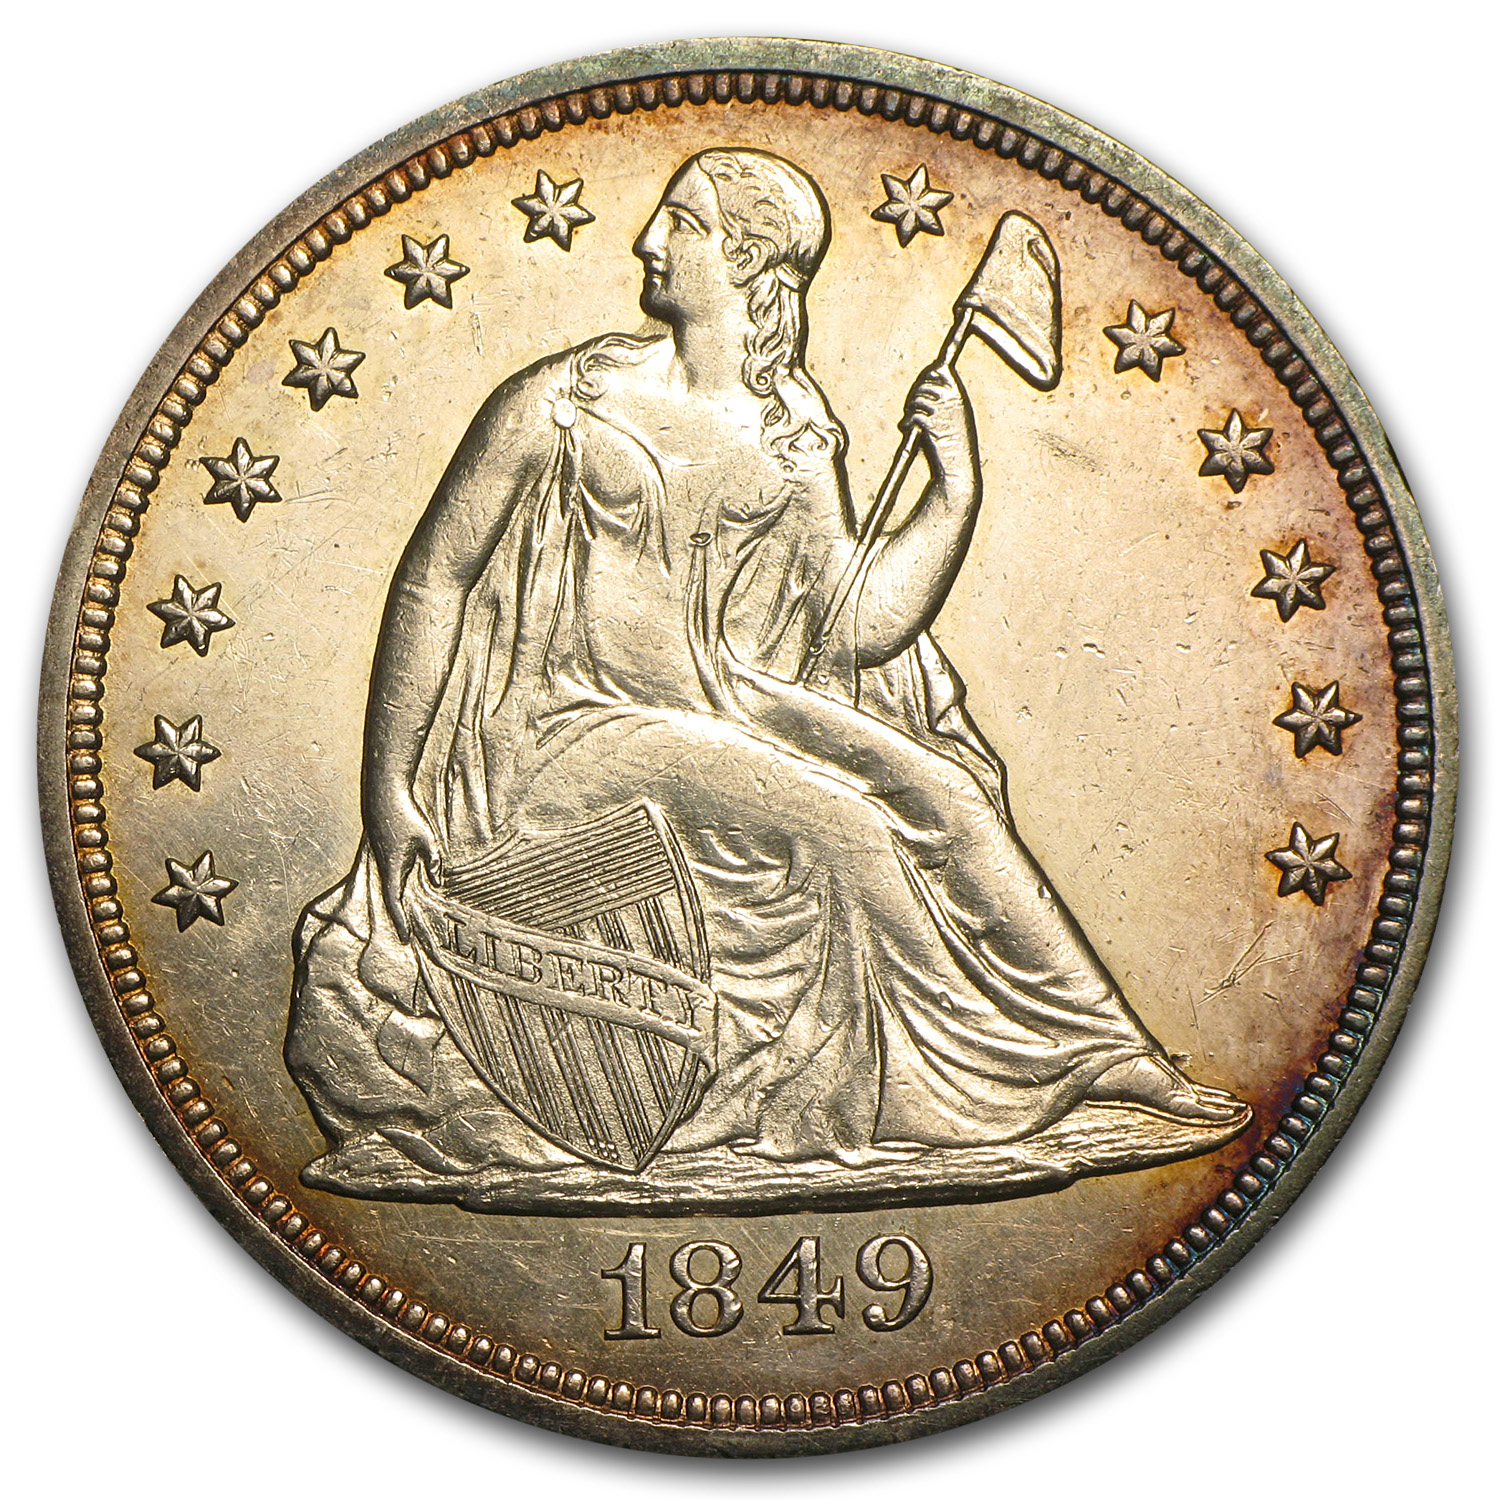 1849 Liberty Seated Dollar Almost Uncirculated